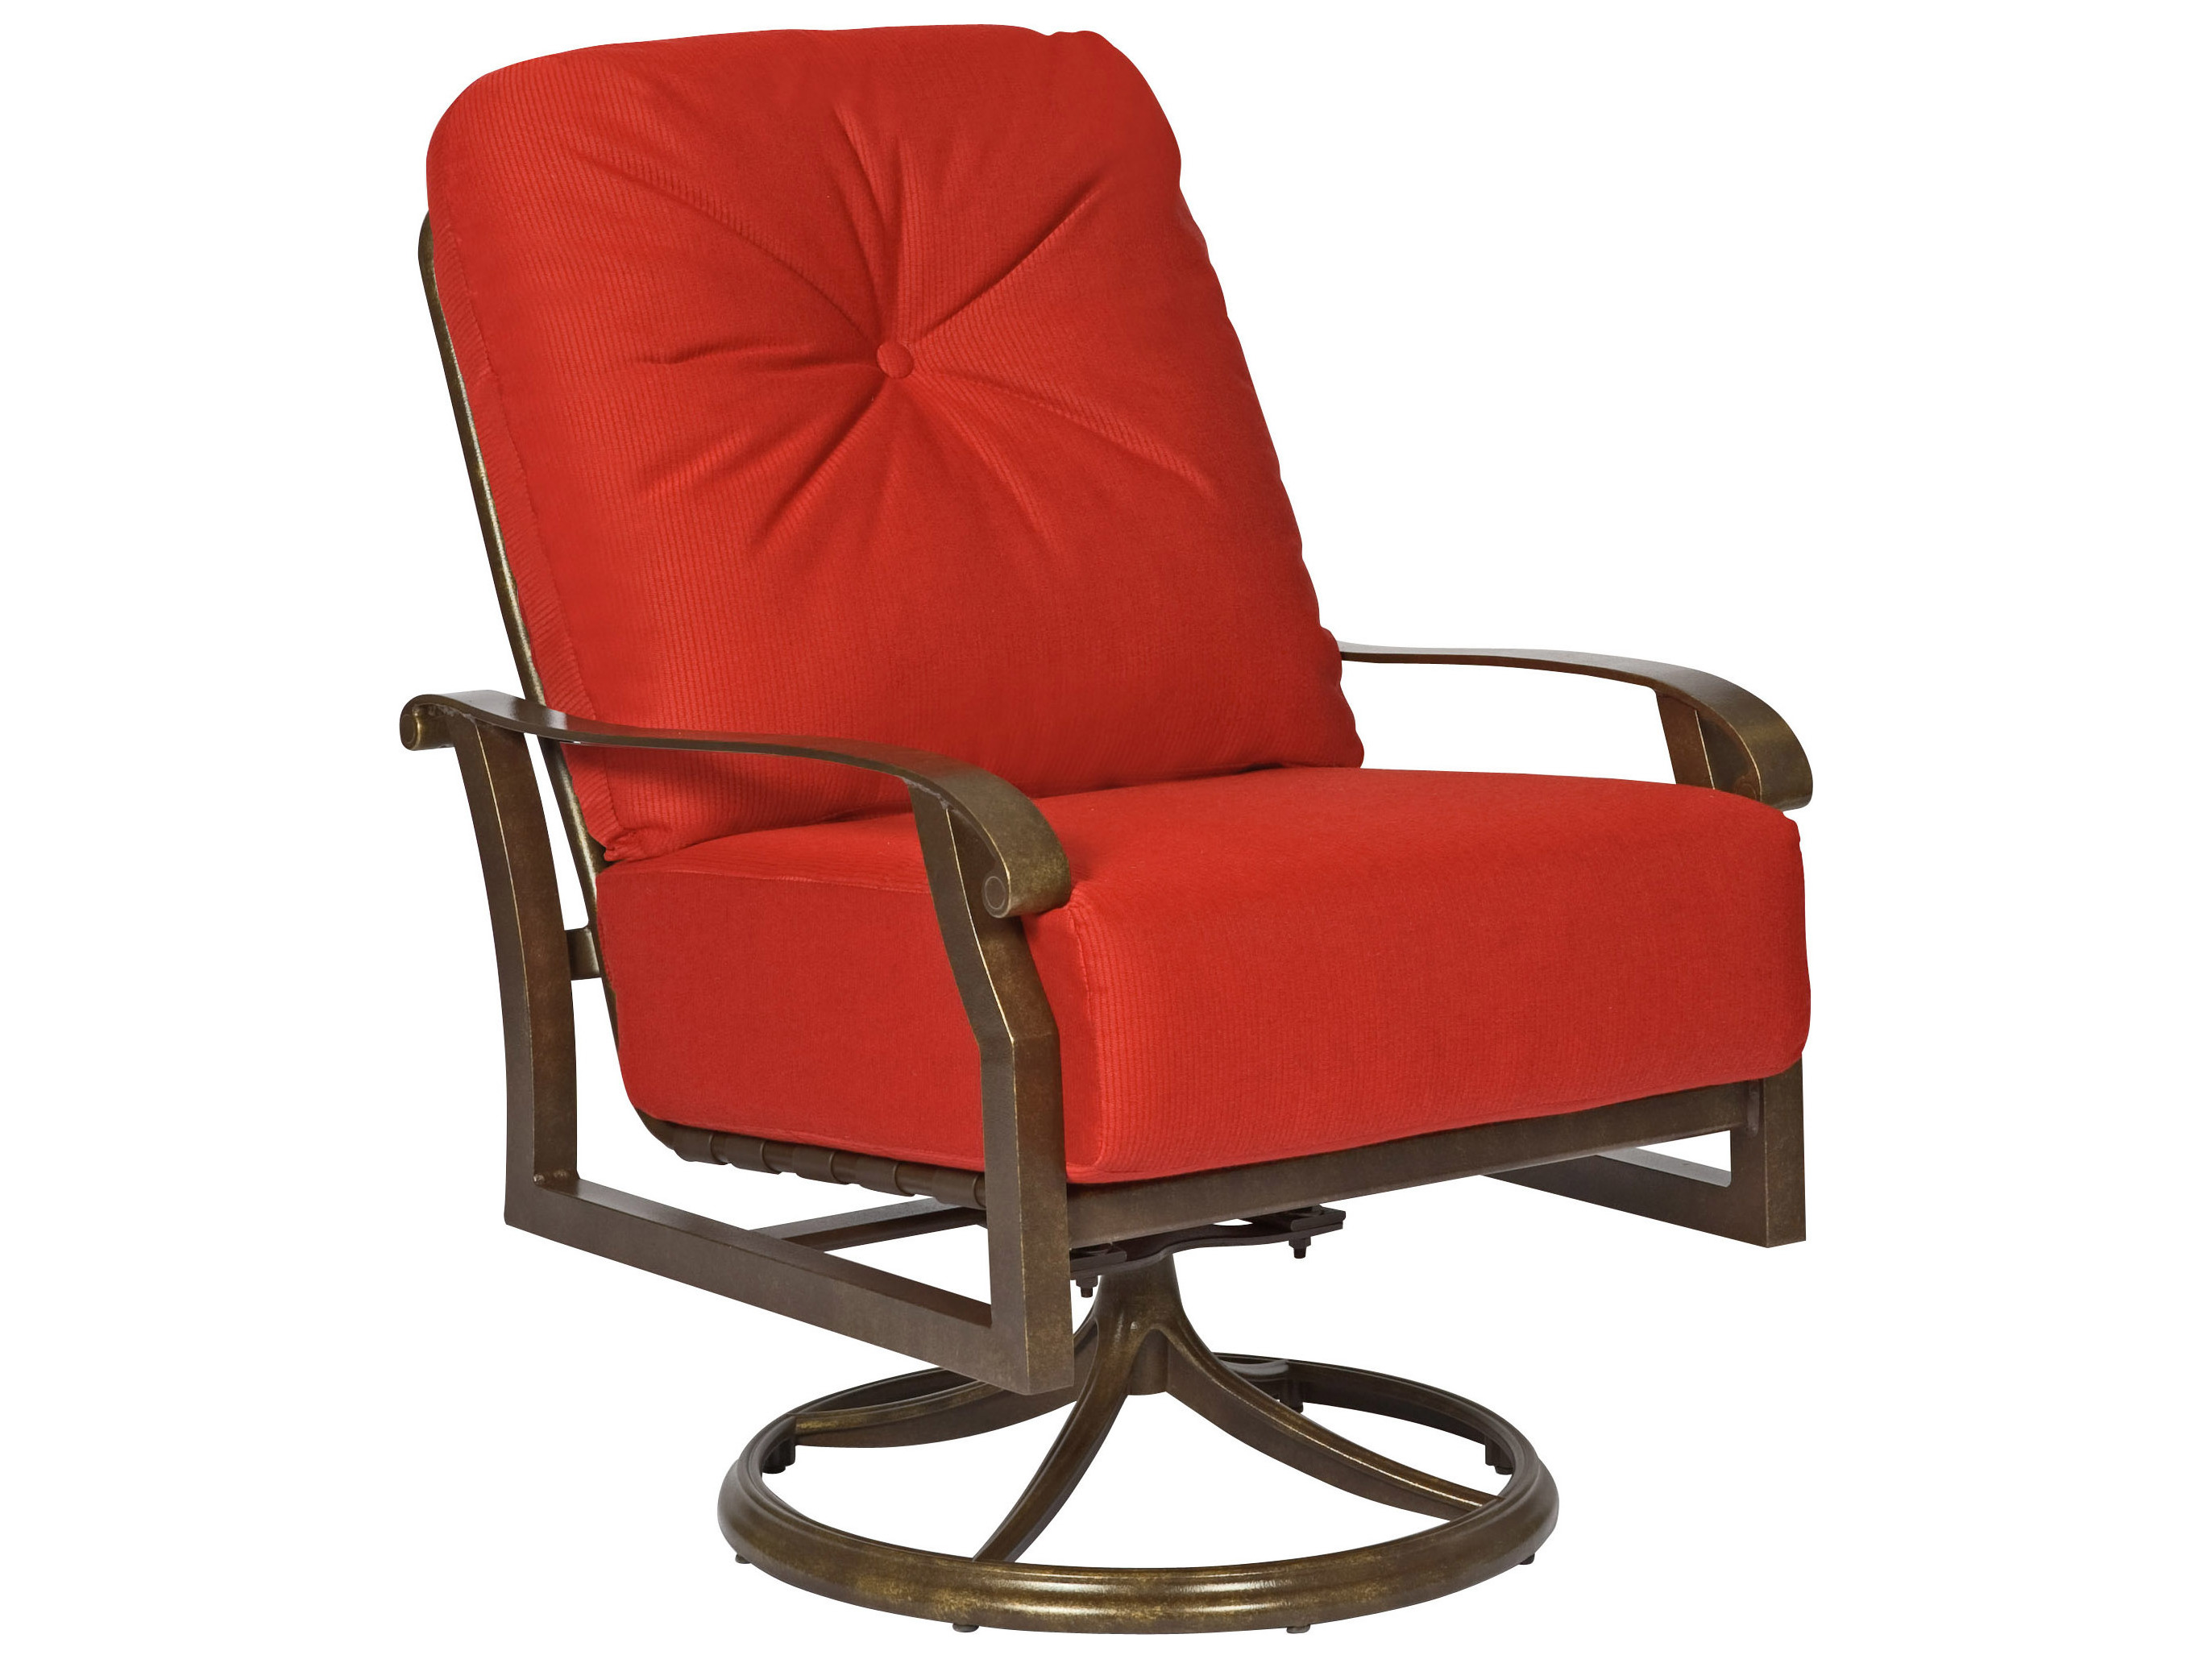 Woodard Cortland Extra Large Swivel Rocker Replacement